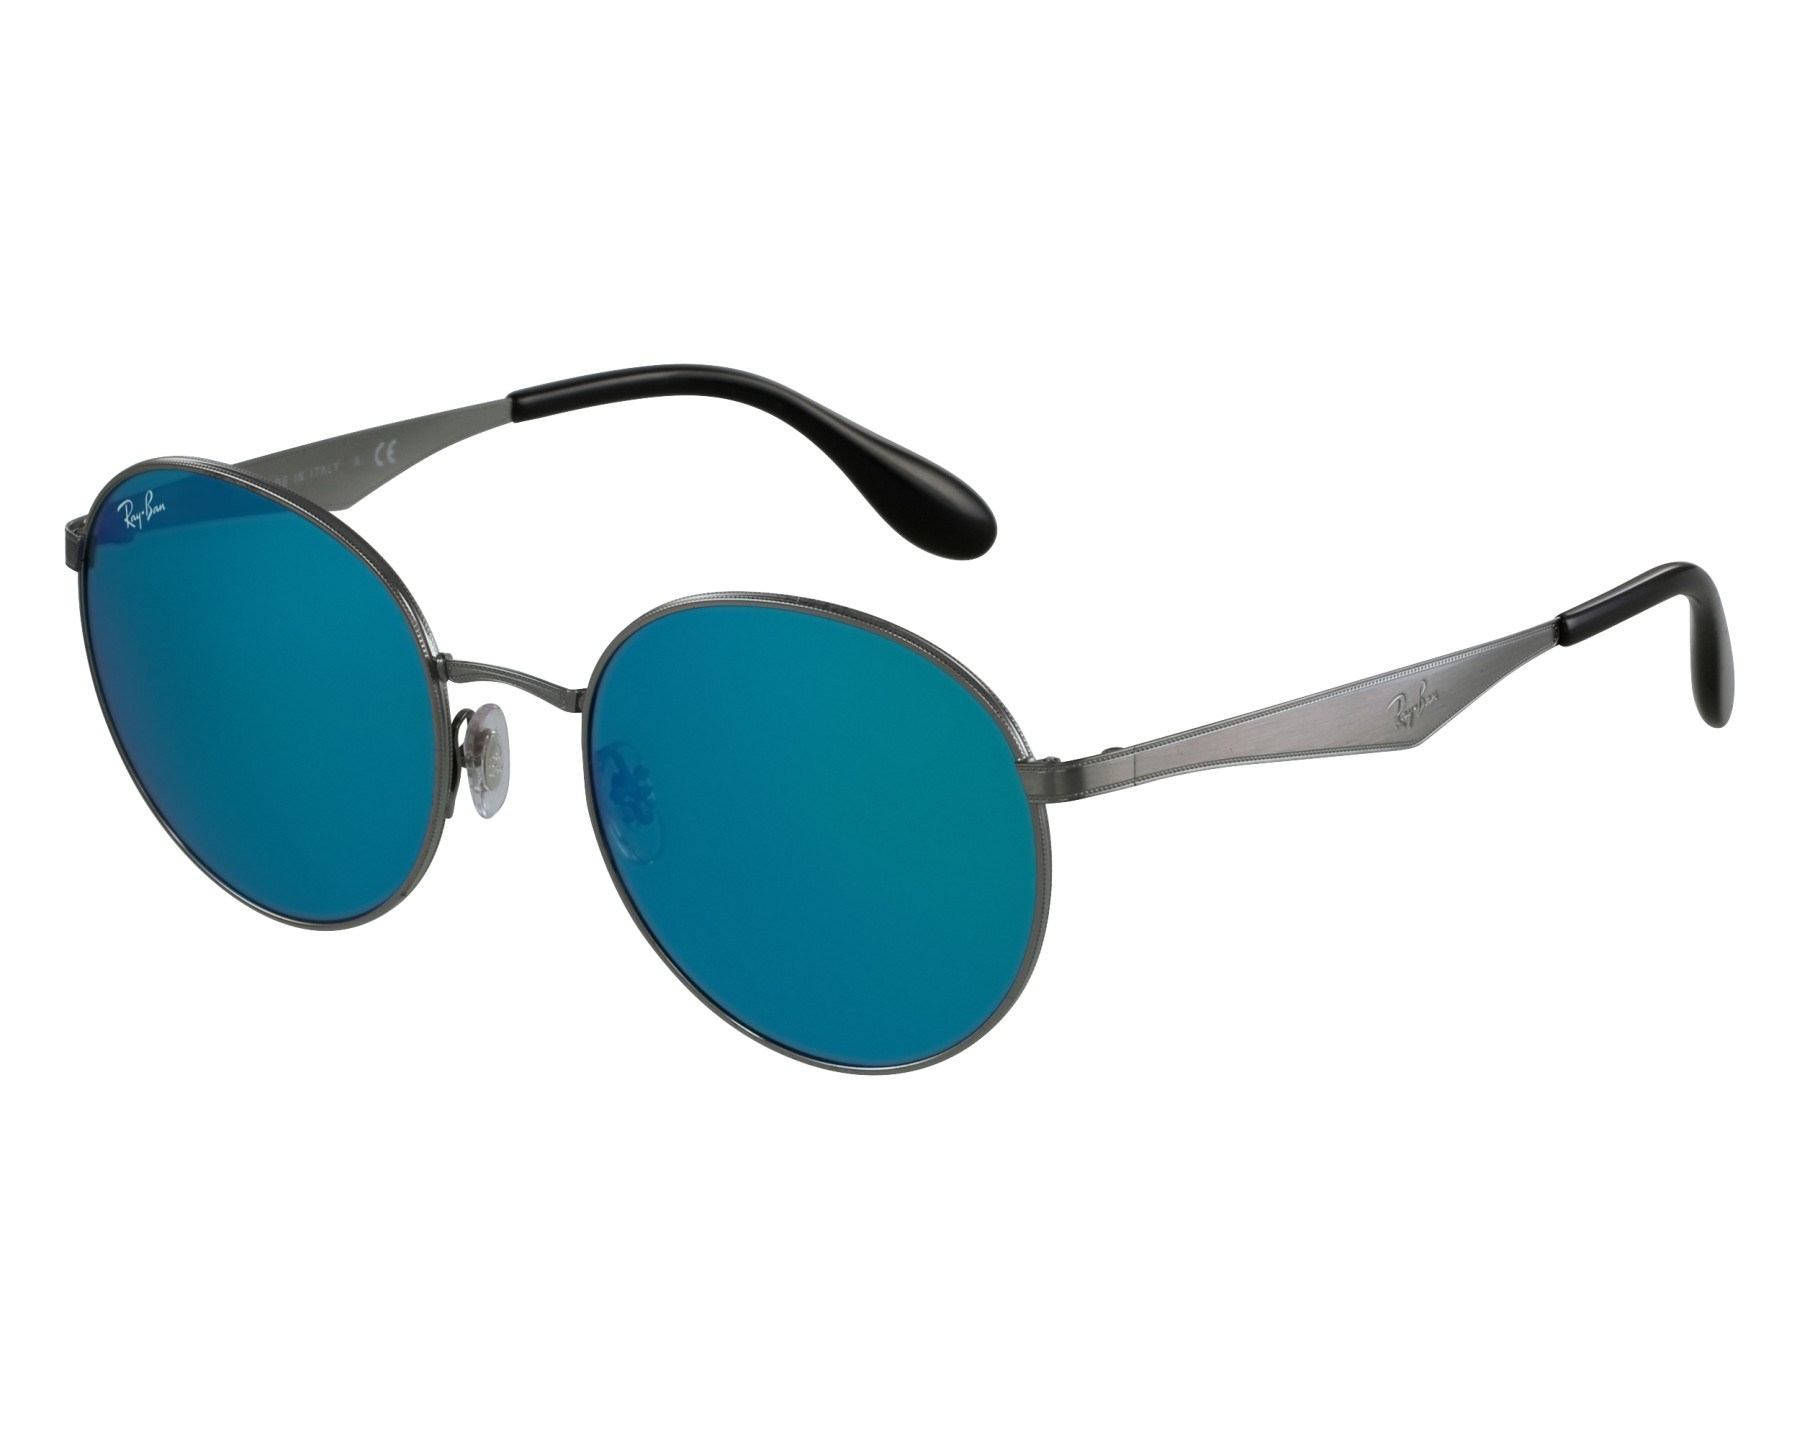 5be7671b9a Sunglasses Ray-Ban RB-3537 004 55 51-19 Gun front view